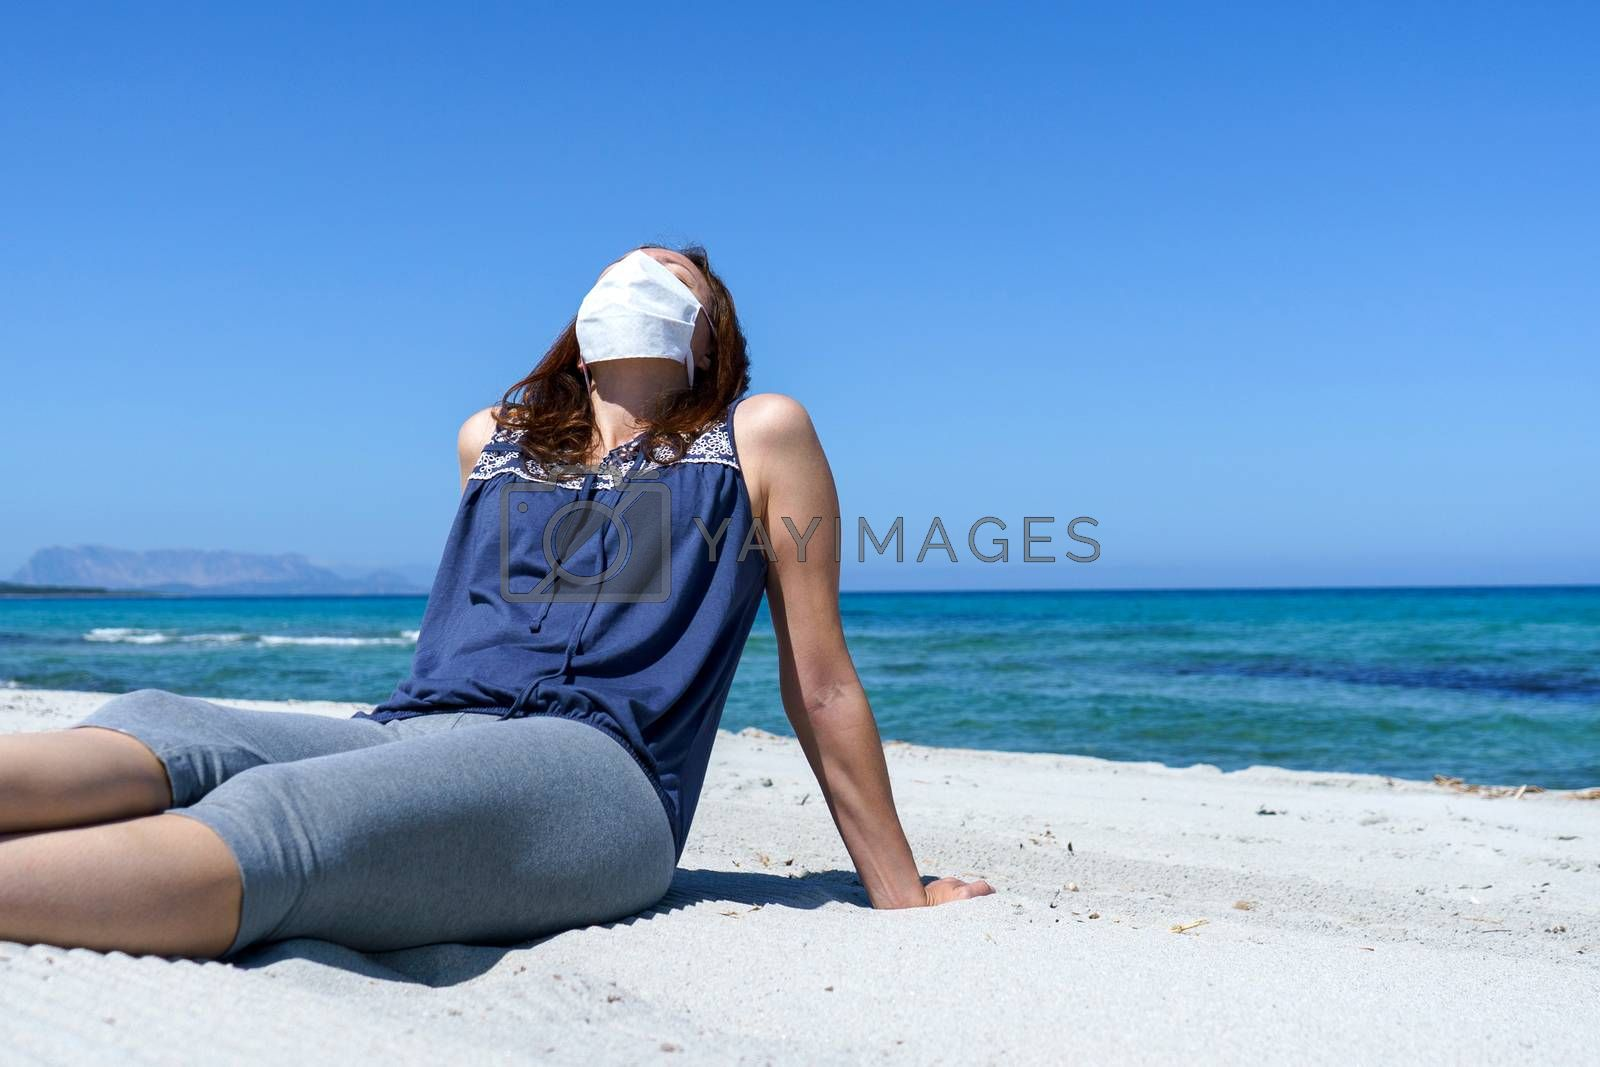 Coronavirus seaside holidays: a woman sitting on the sand at the beach look at the sun with the mask for Covid-19 pandemic